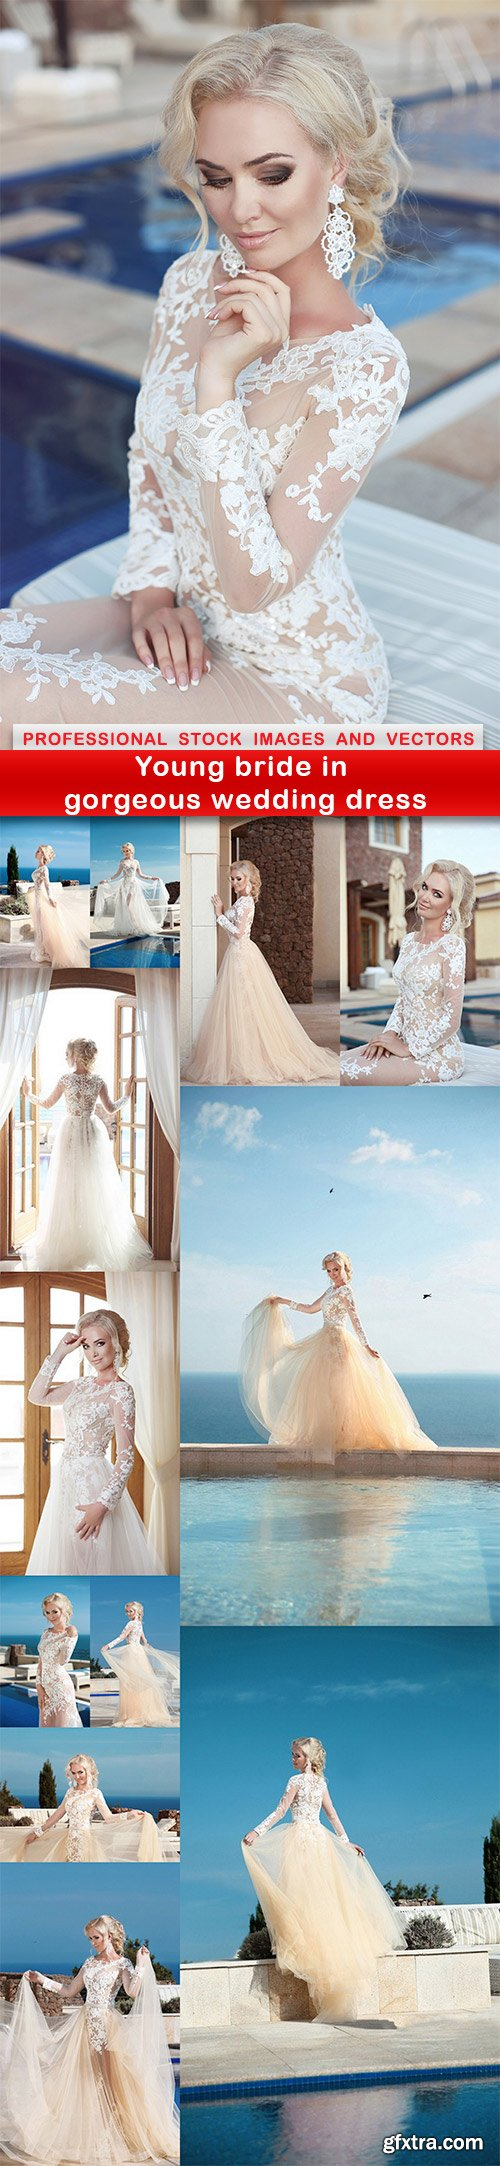 Young bride in gorgeous wedding dress - 13 UHQ JPEG